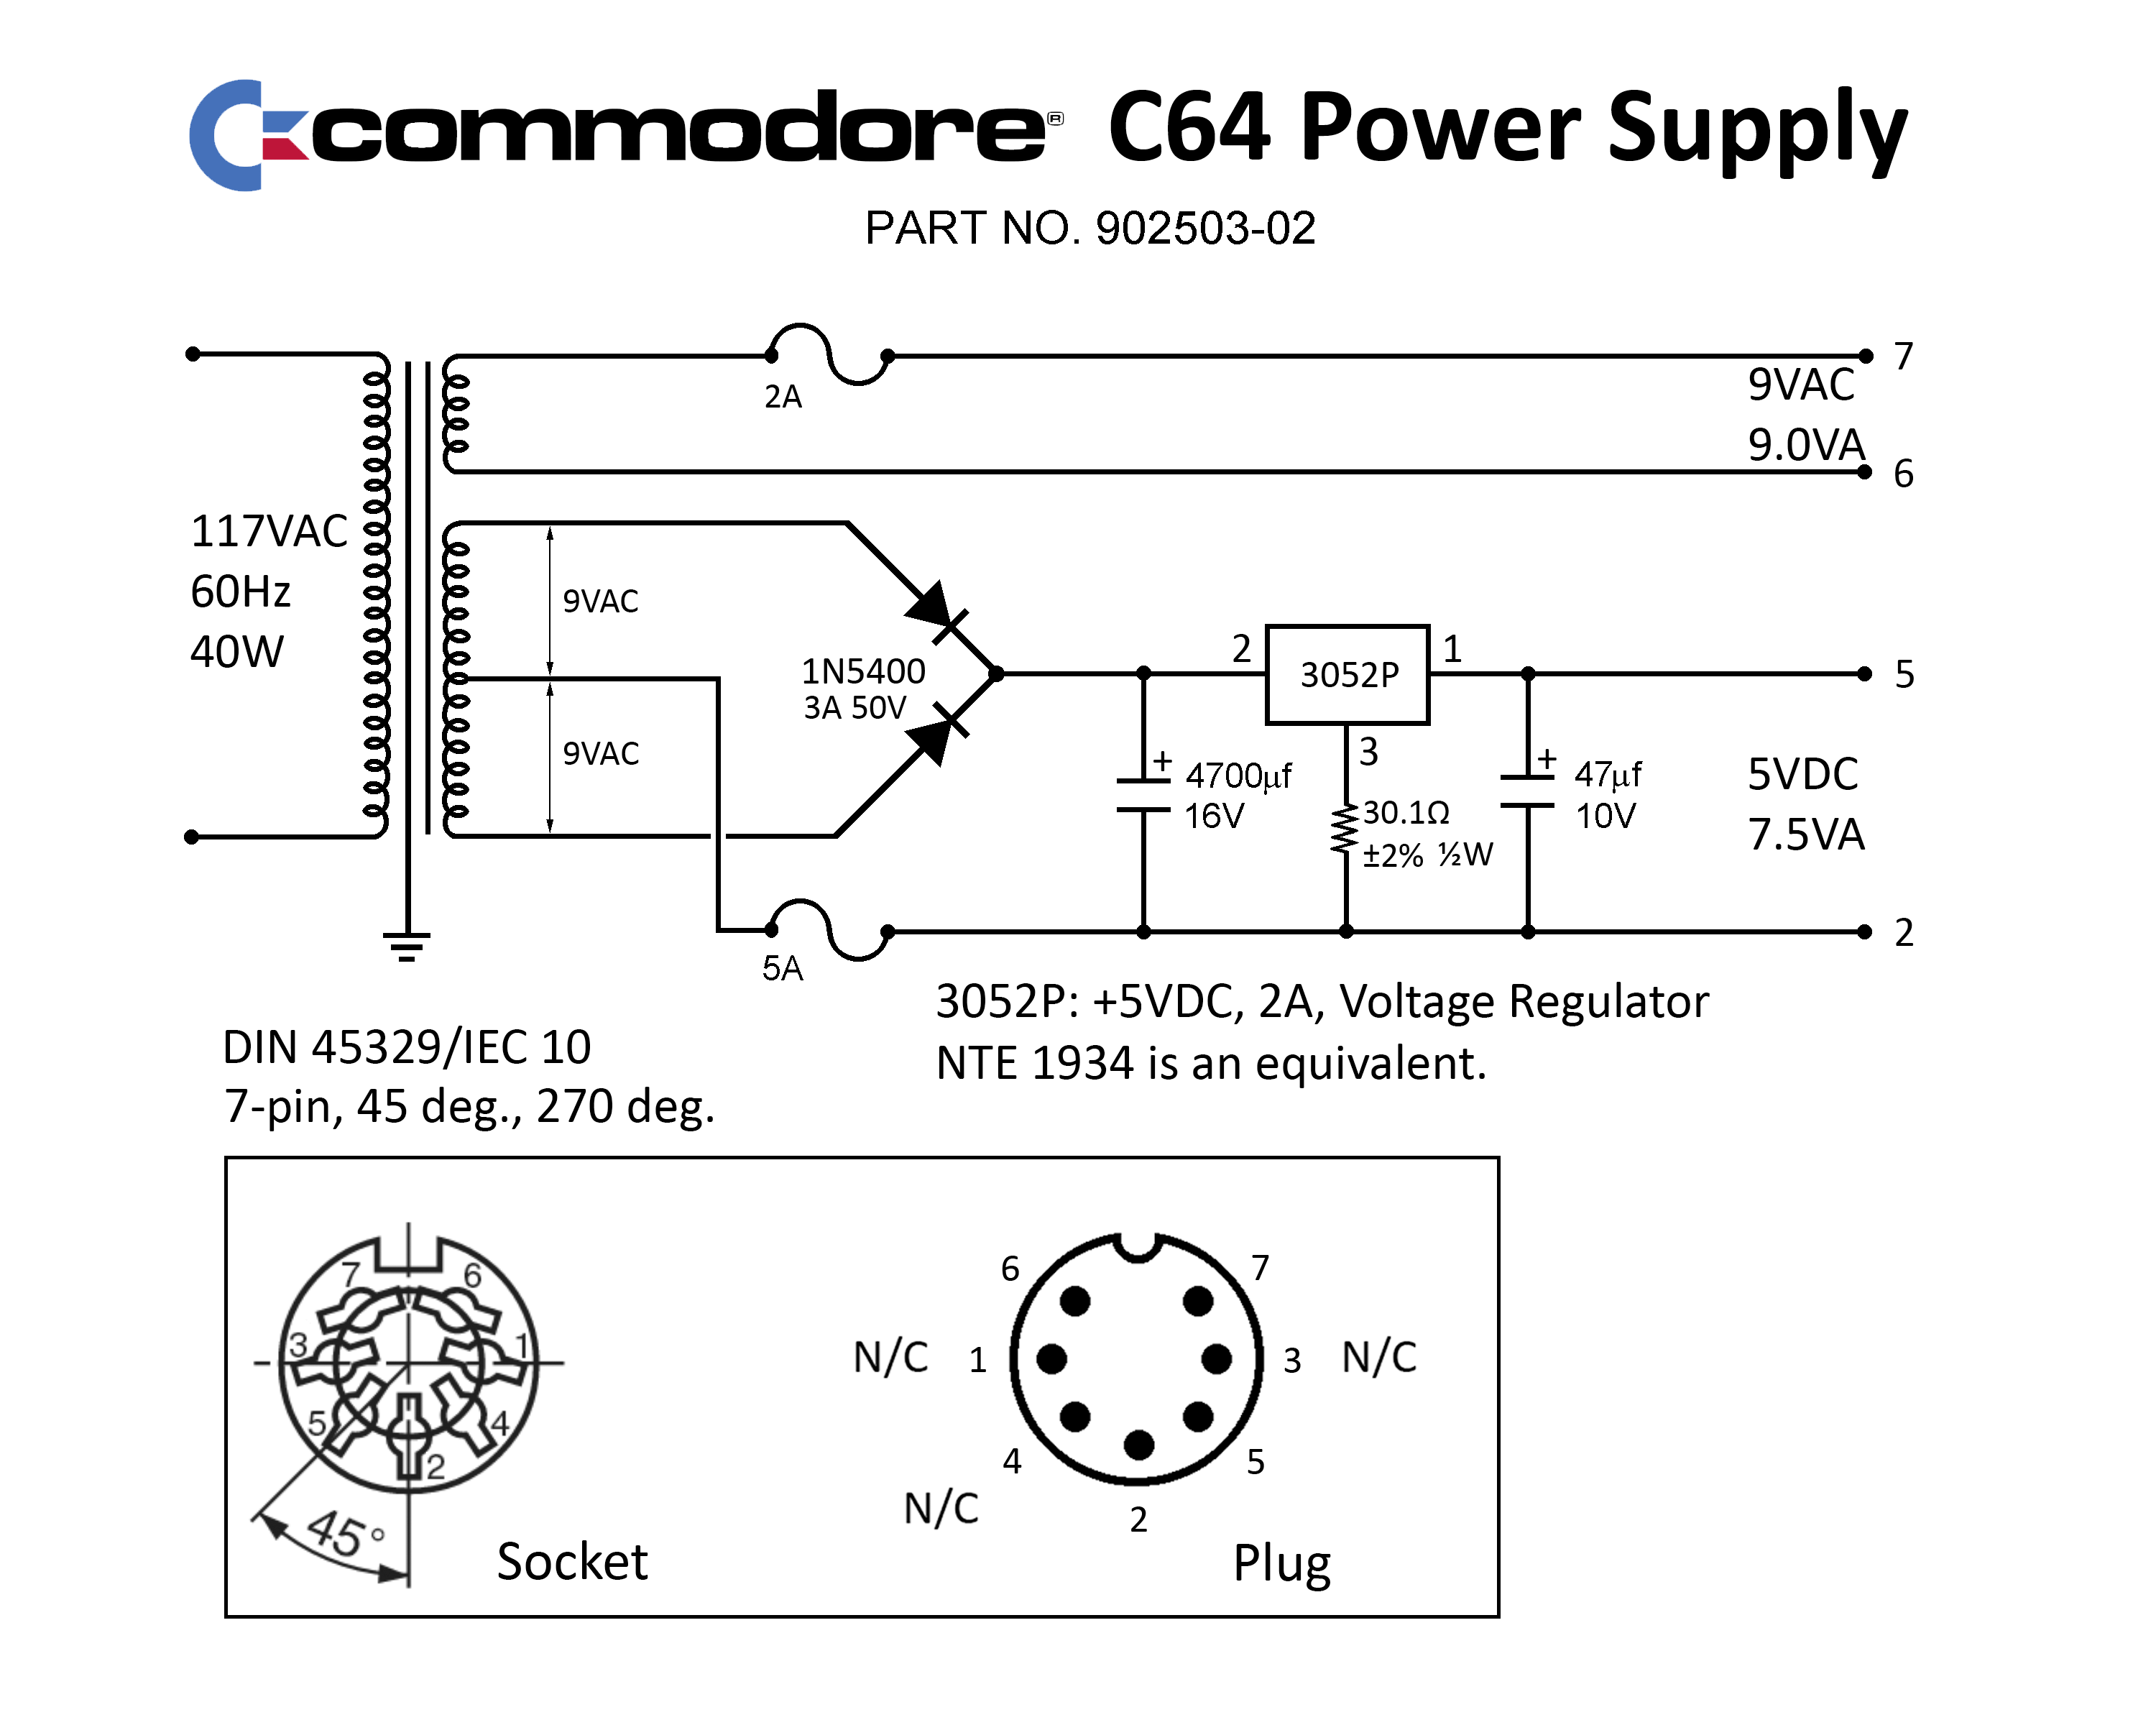 Pin Out For Commodore 64 Power Supply Pins 67 With No Volts 9vdc Transformer Psu Verify This By Setting Your Dmm To Ac And Measure Between 6 7 There Is A Fuse In Line Btw So Be Careful Not